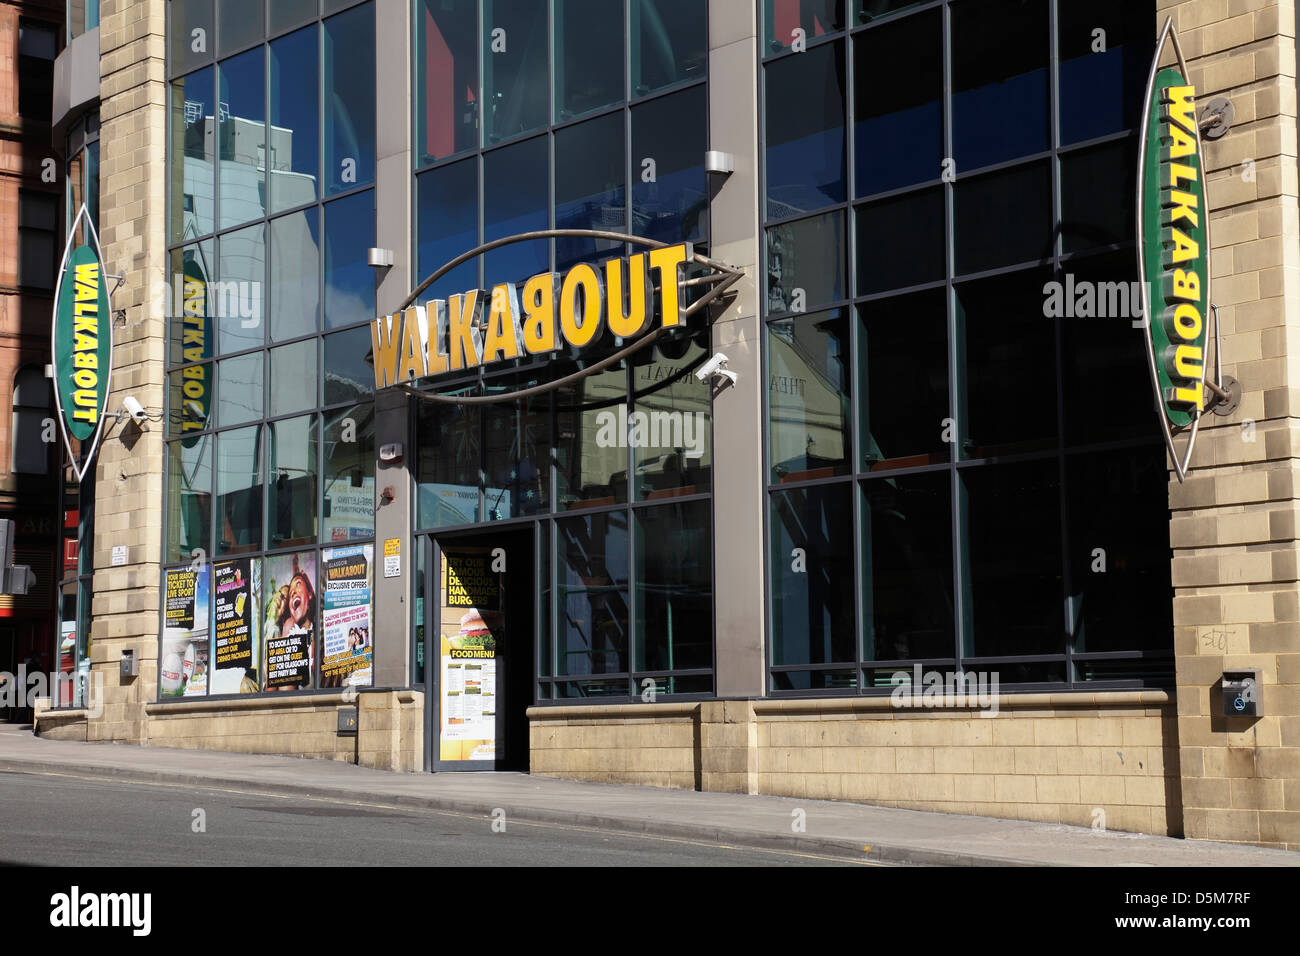 Walkabout an Australian themed bar on Renfield Street in Glasgow city centre, Scotland, UK - Stock Image